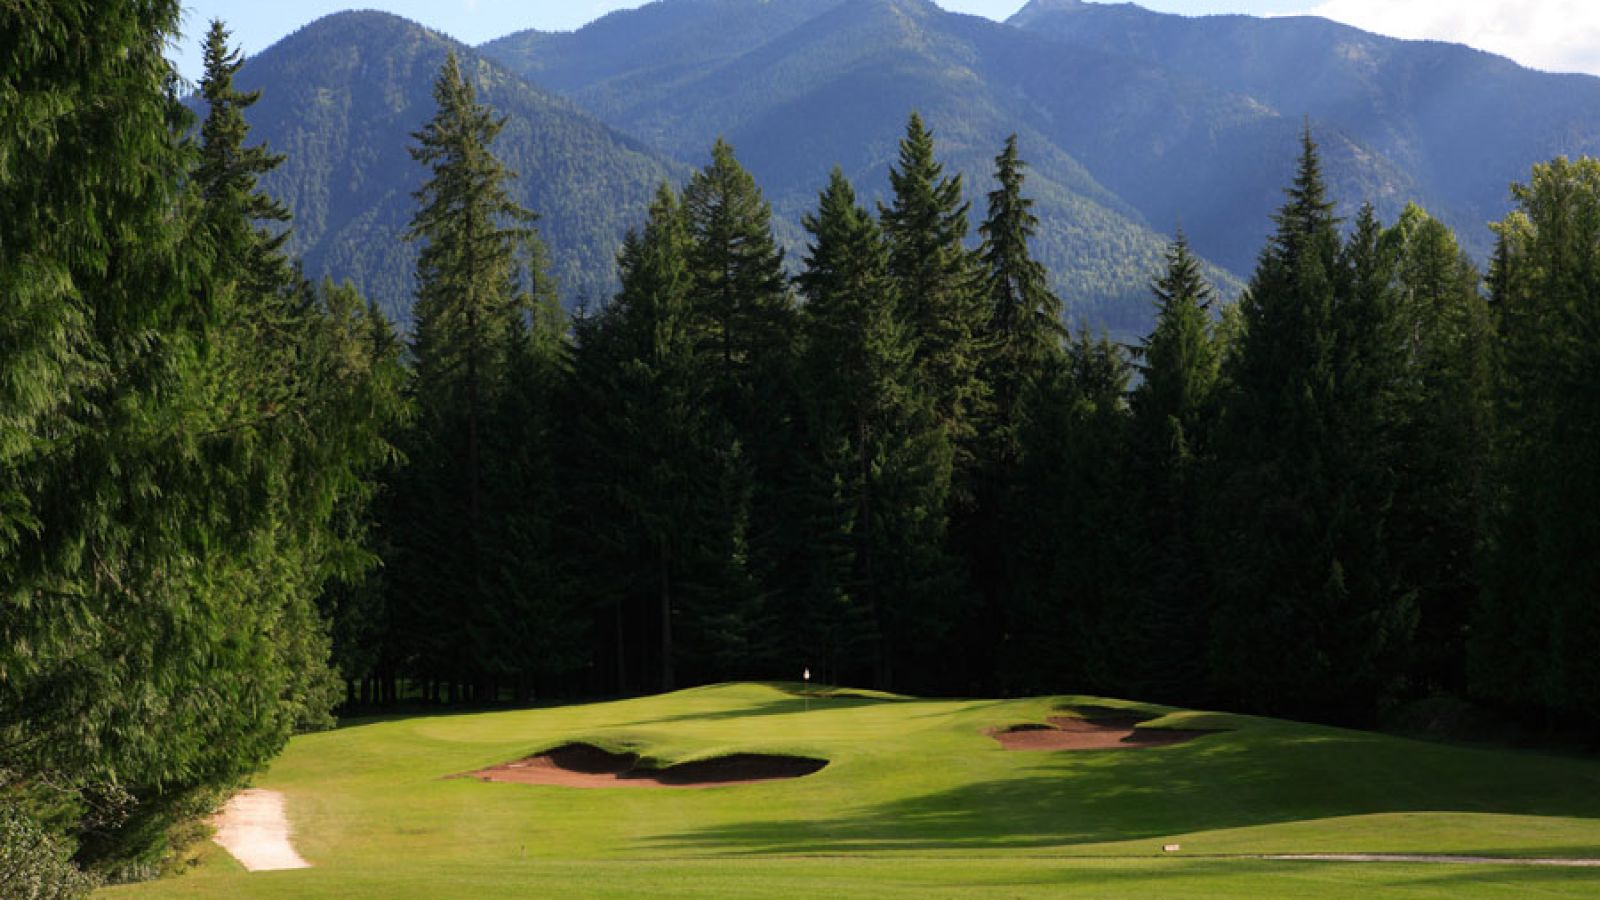 A world-class golf course carved out of spectacular mountainous terrain.